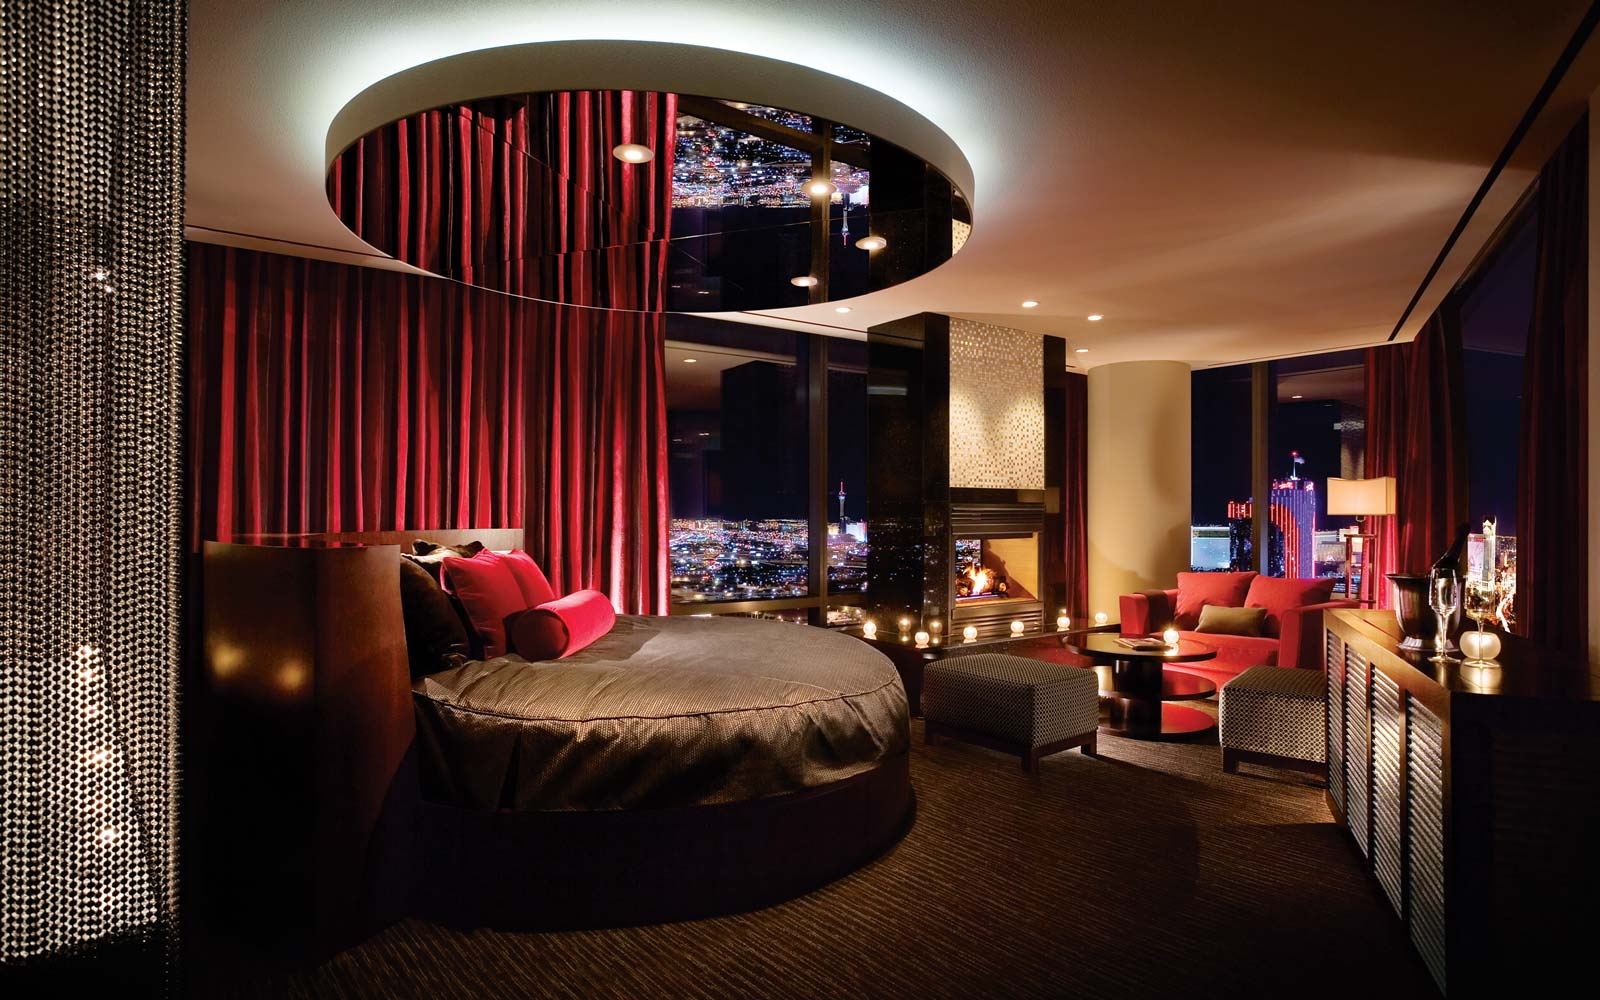 Two Story Sky Villa at the Palms Casino Resort in Las Vegas